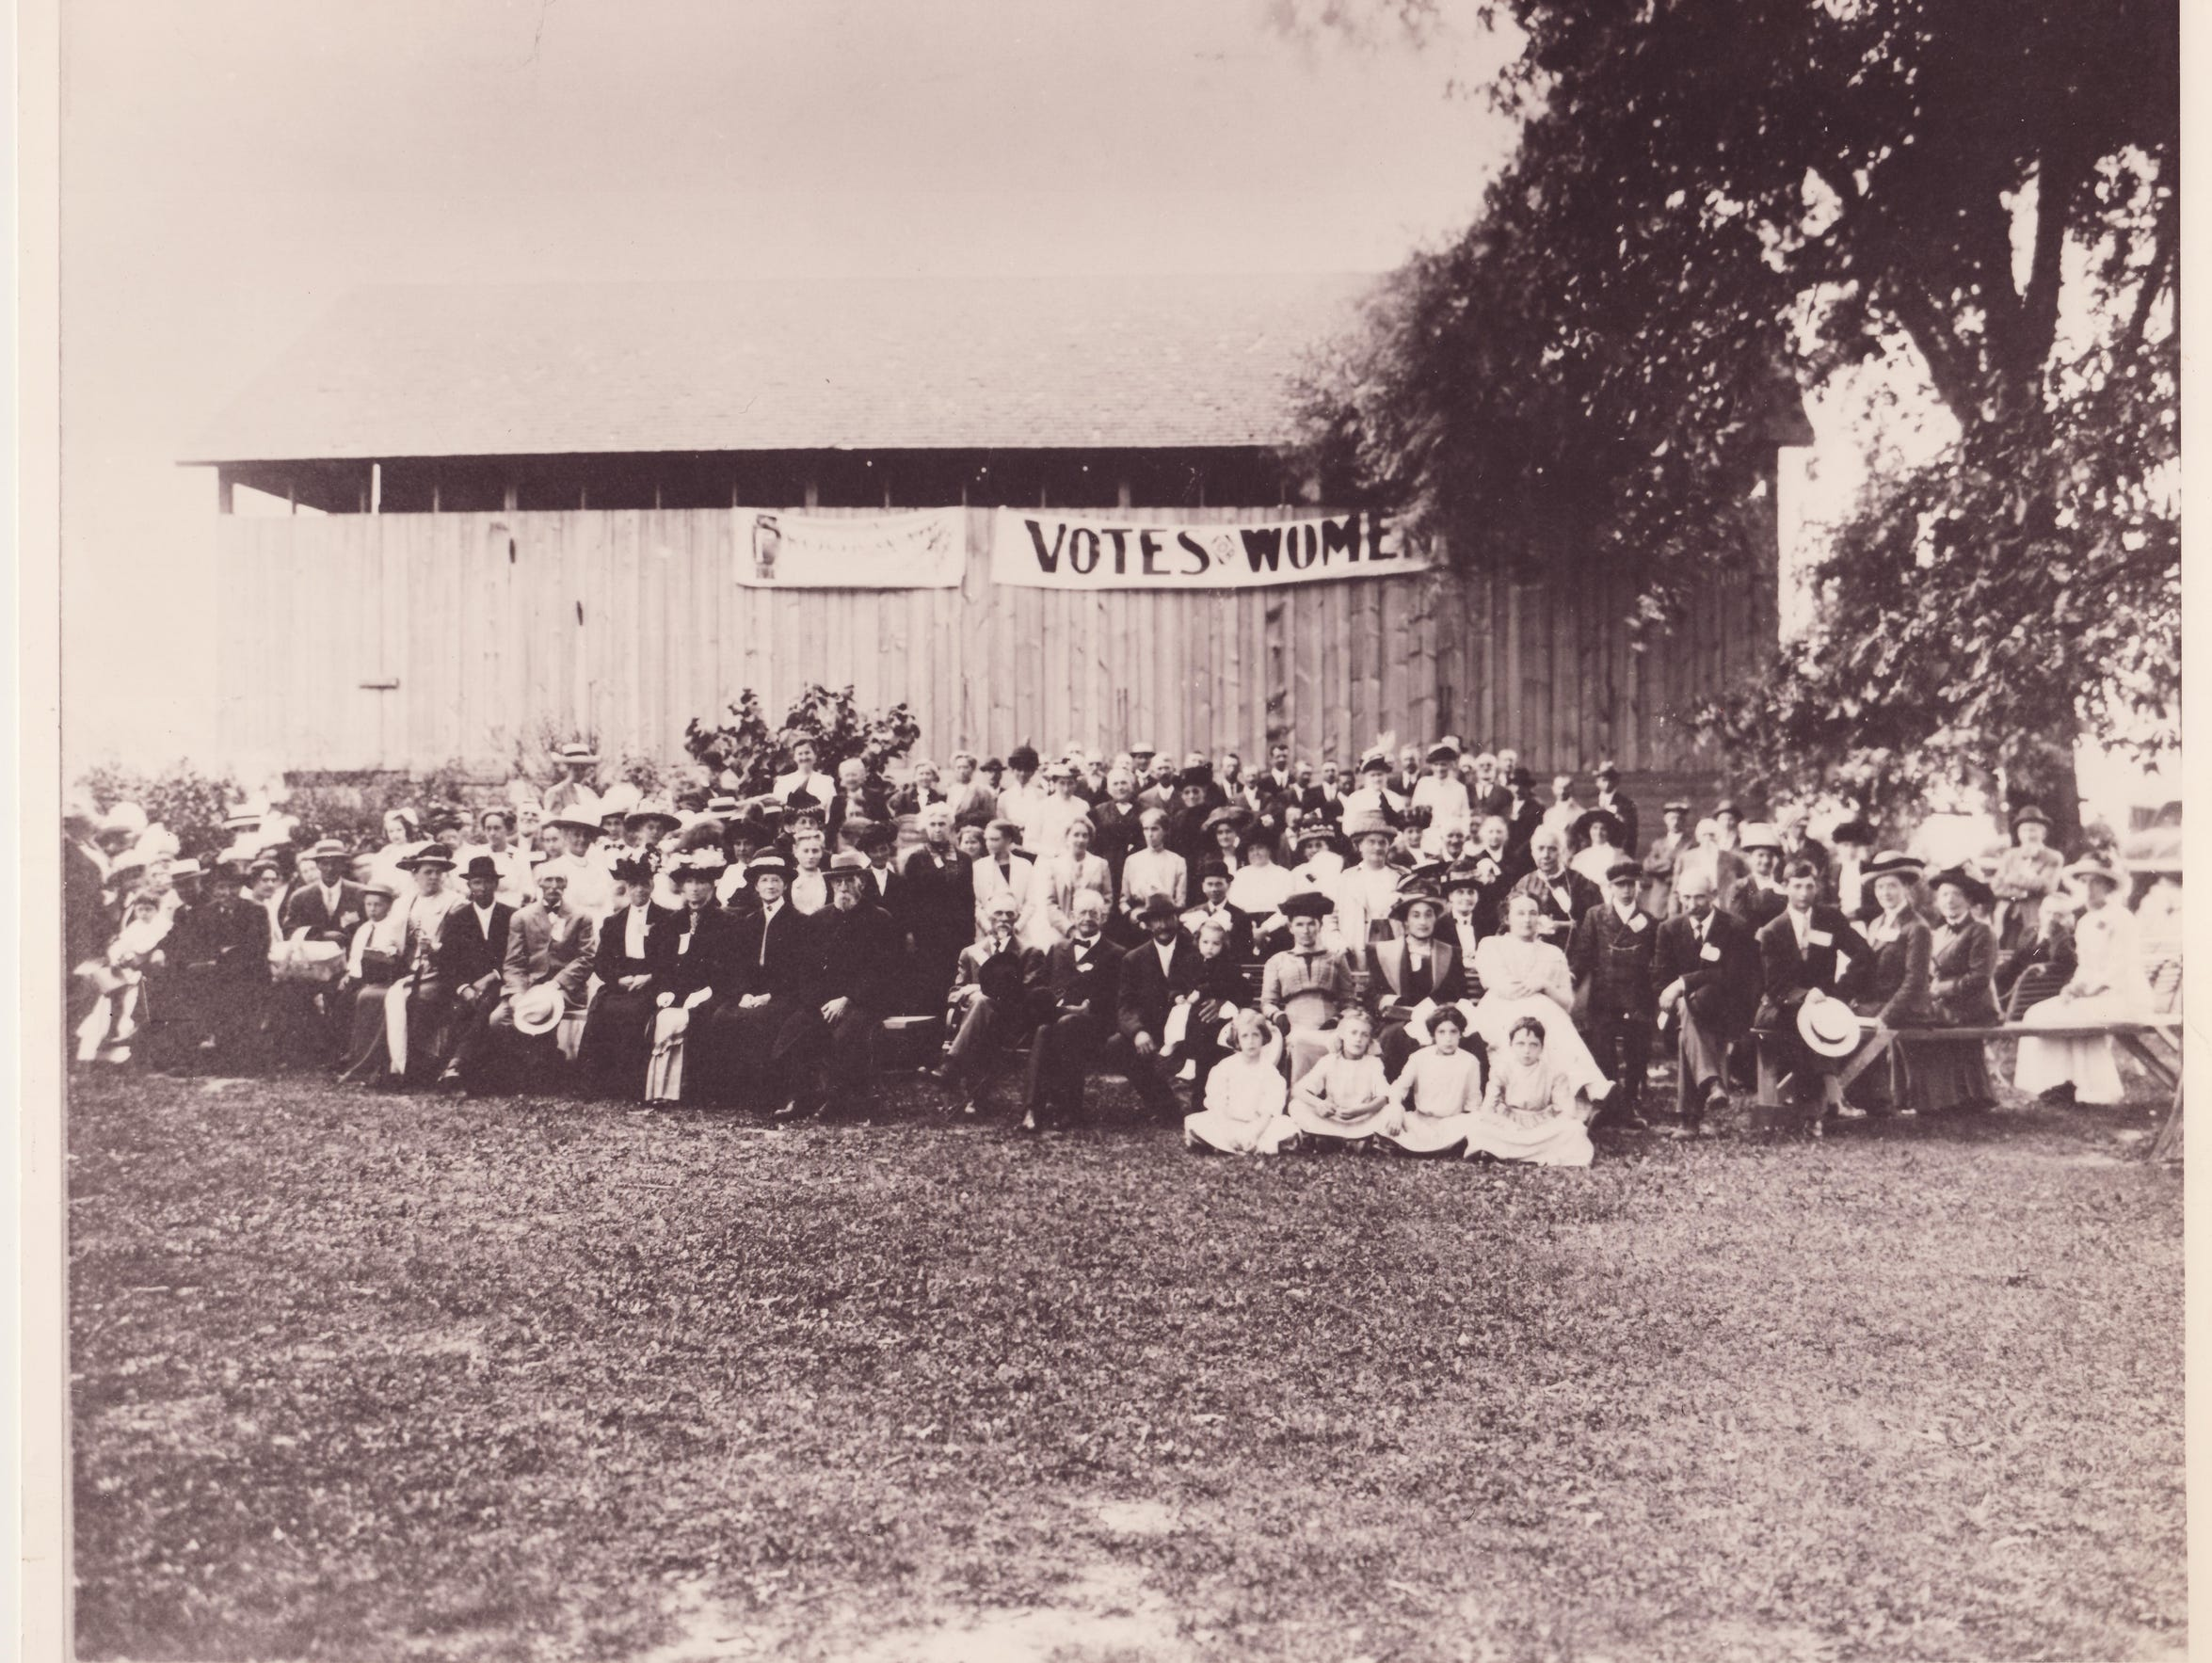 This historical photo provided by the Michigan Women's